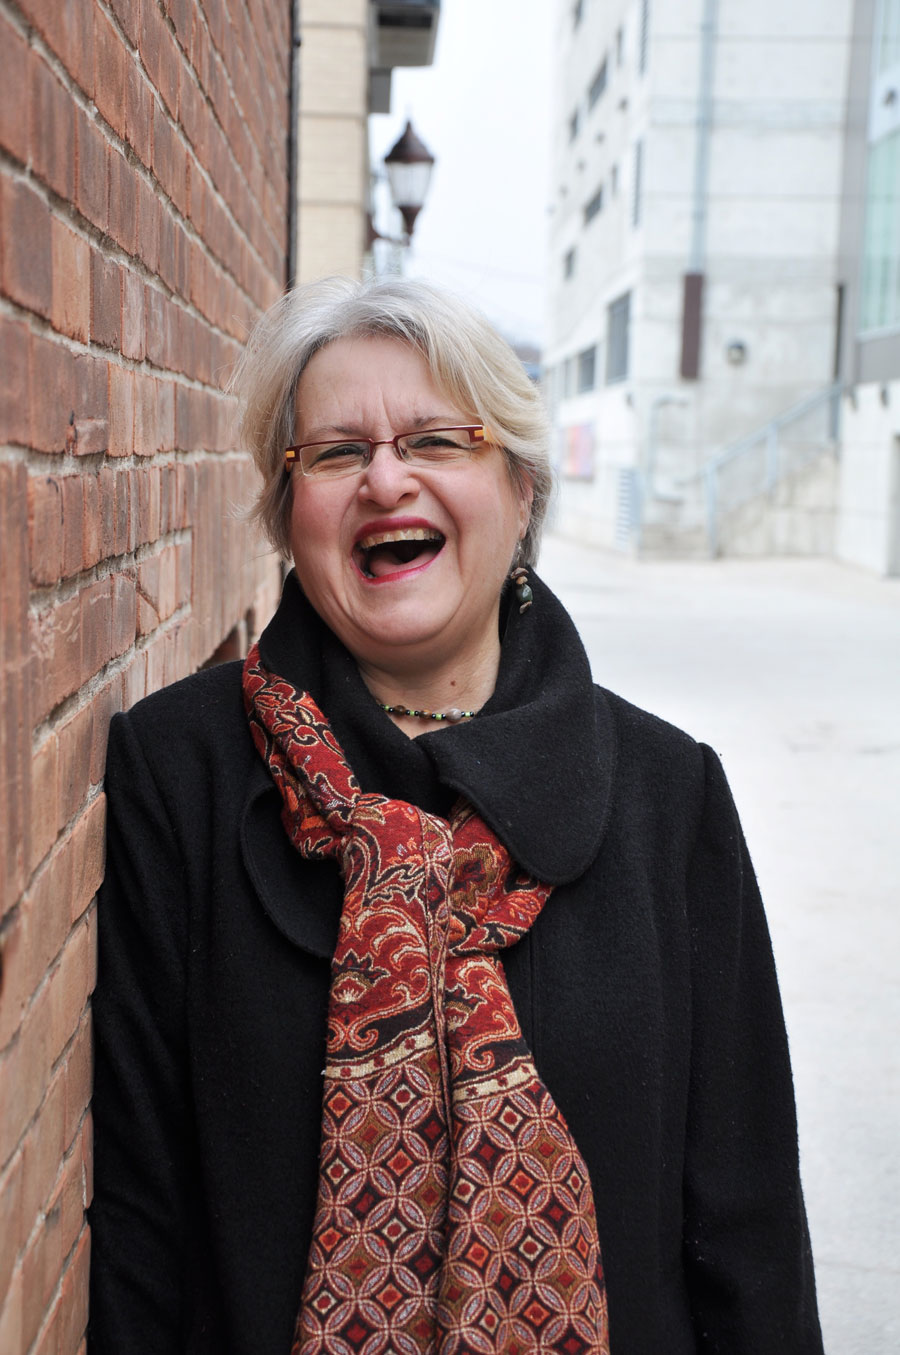 woman in black pea coat leaning against brick wall, laughing